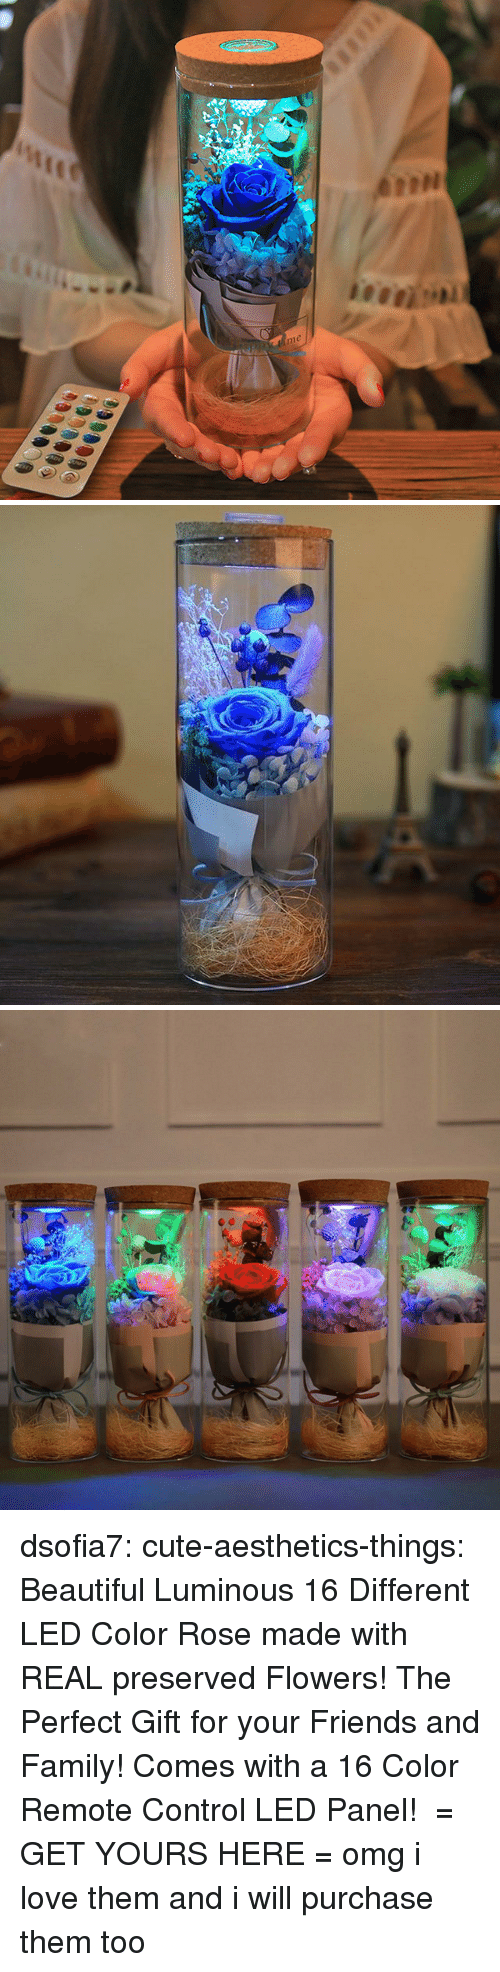 Beautiful, Cute, and Family: me dsofia7: cute-aesthetics-things:  Beautiful Luminous 16 Different LED Color Rose made with REAL preserved Flowers! The Perfect Gift for your Friends and Family! Comes with a 16 Color Remote Control LED Panel! = GET YOURS HERE =  omg i love them and i will purchase them too